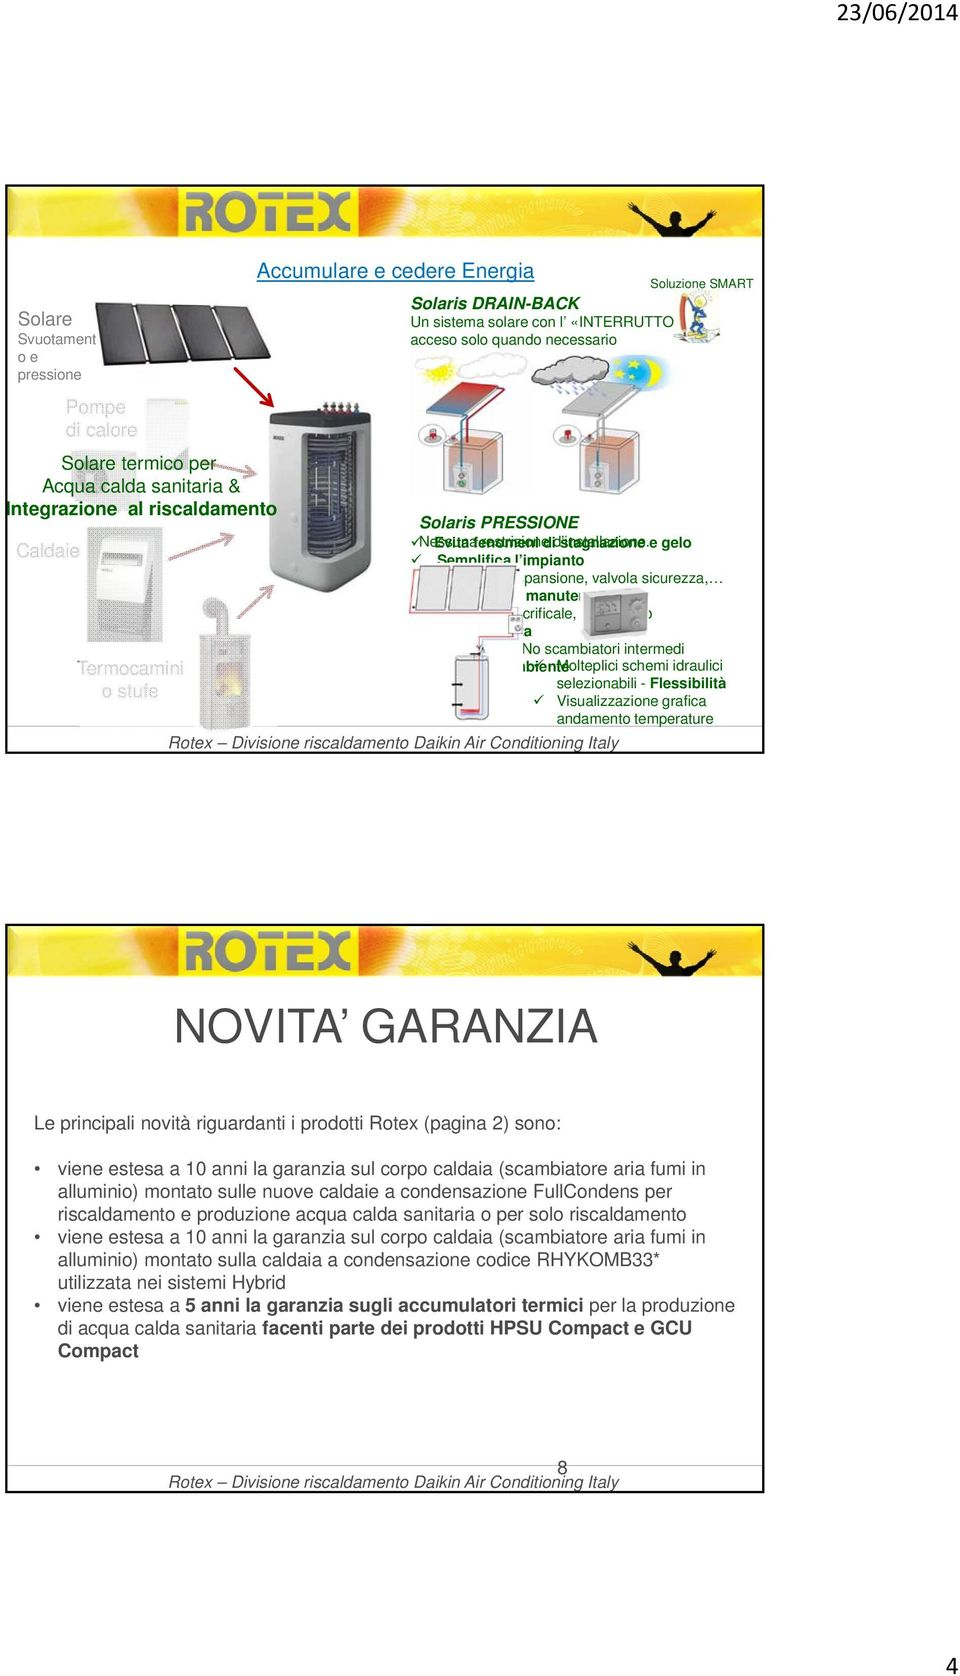 stagnazione e gelo Semplifica l impianto No vaso d espansione, valvola sicurezza, Ridotti costi manutenzione No anodo sacrificale, no antigelo Alta efficienza No antigelo, No scambiatori intermedi